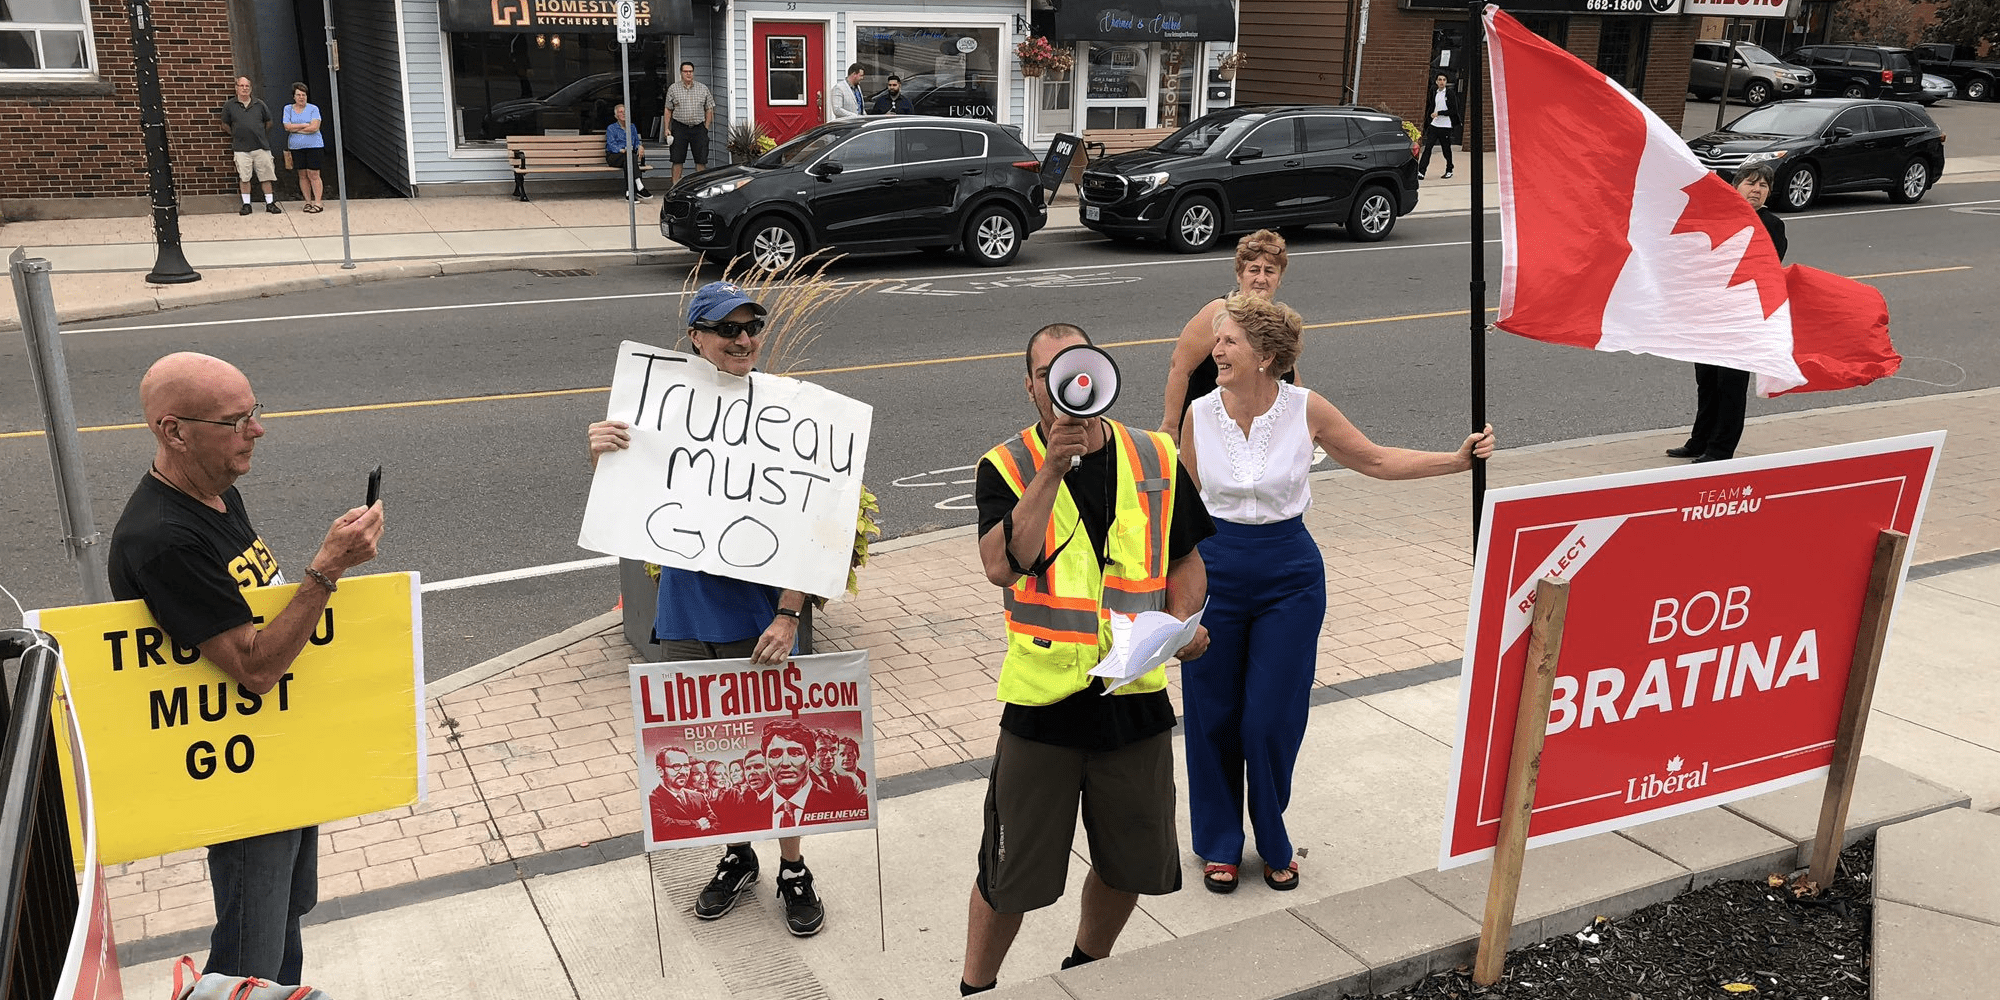 Protestors and supporters clash as Justin Trudeau visits deli